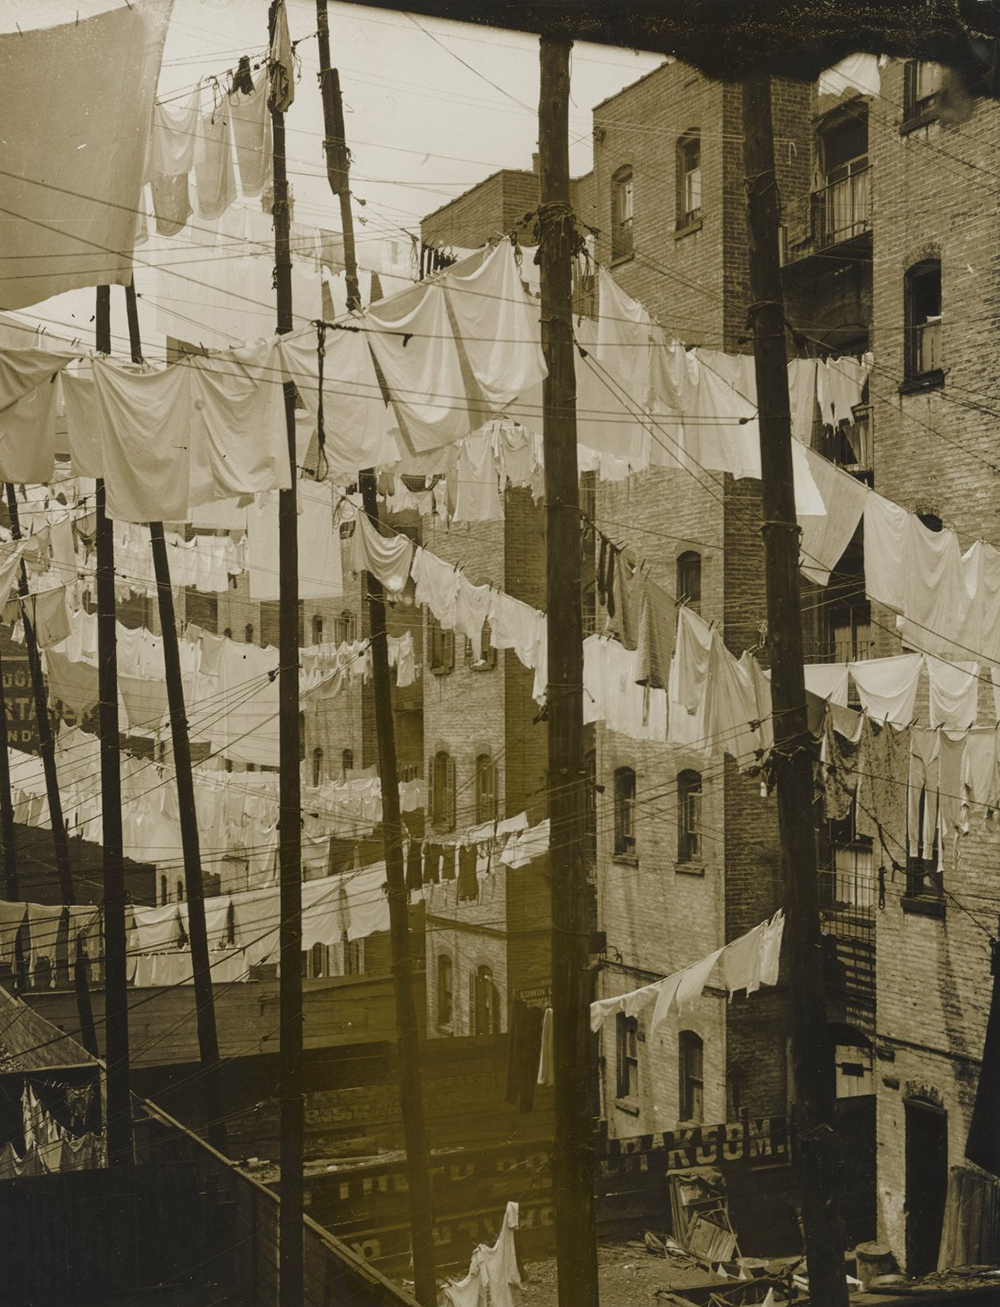 Tenements, New York, by Consuelo Kanaga, c. 1930. Brooklyn Museum, Gift of Wallace B. Putnam from the Estate of Consuelo Kanaga.